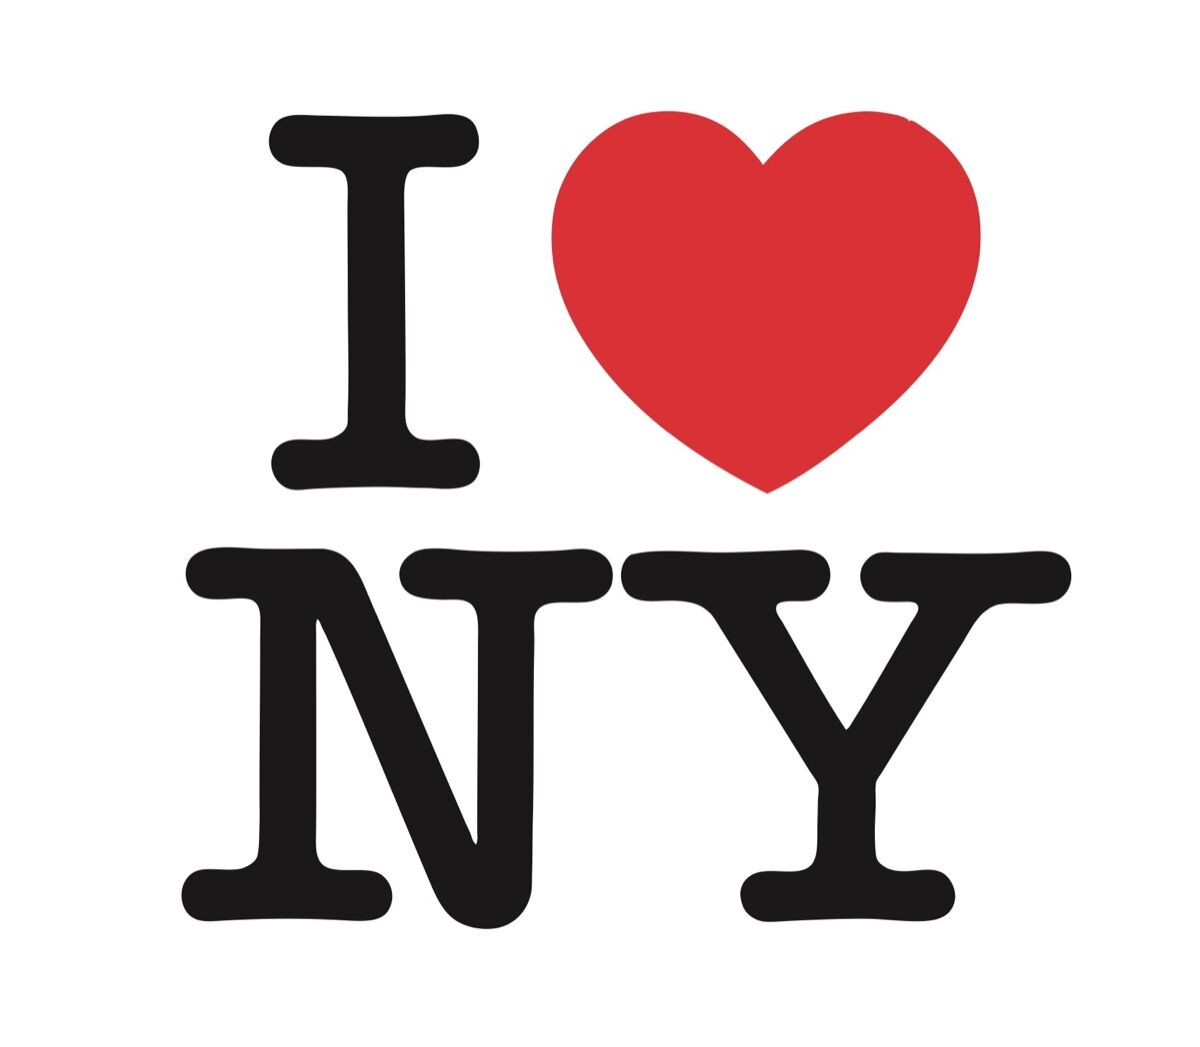 Courtesy of Milton Glaser, Inc.